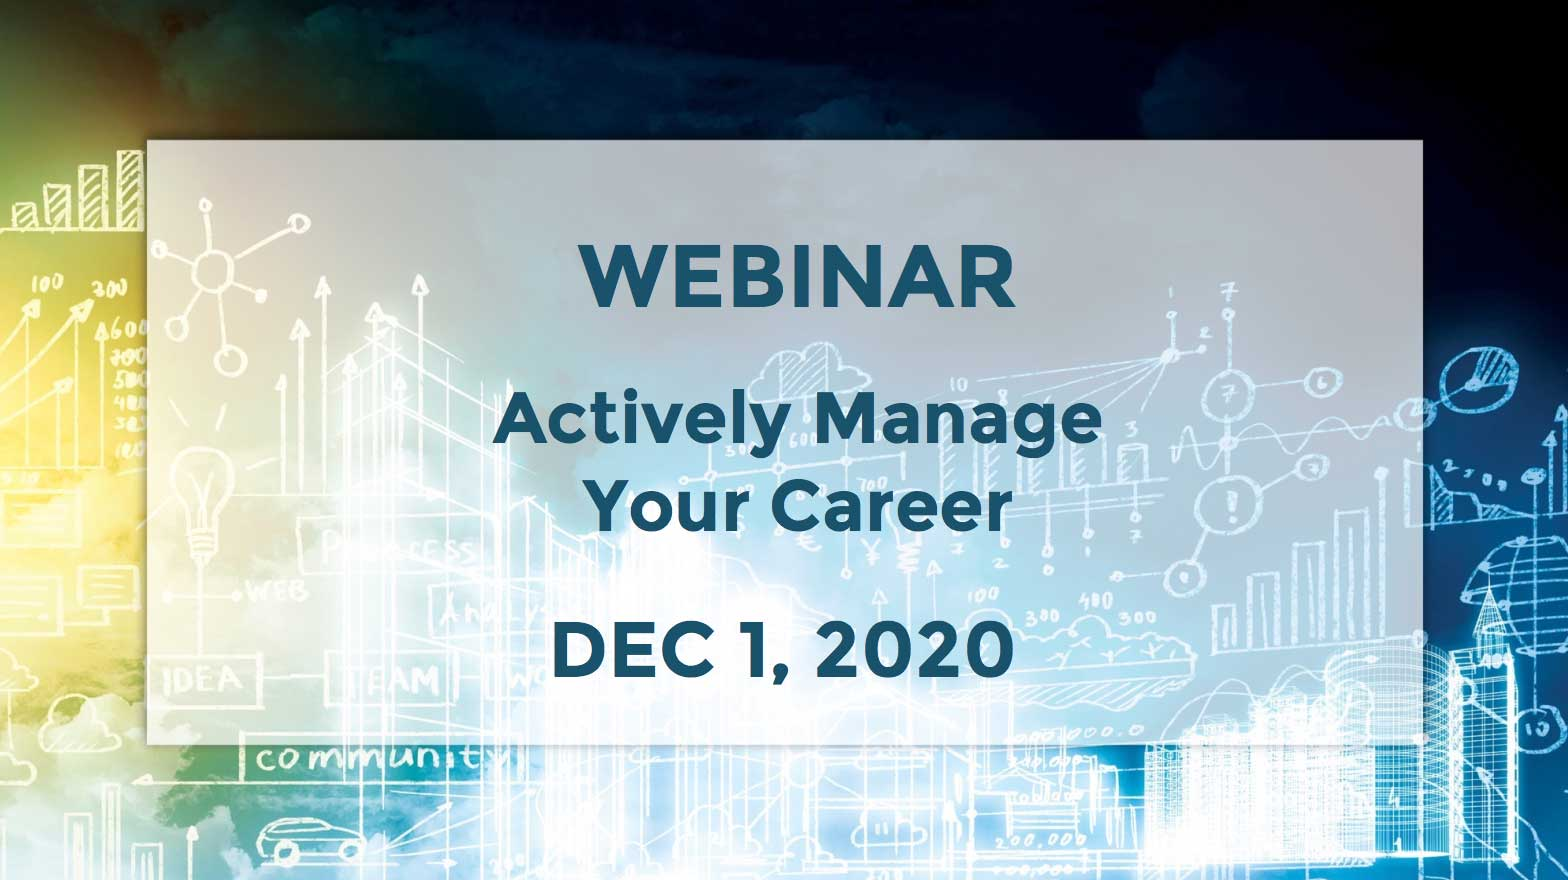 December 1 – Actively Manage Your Career